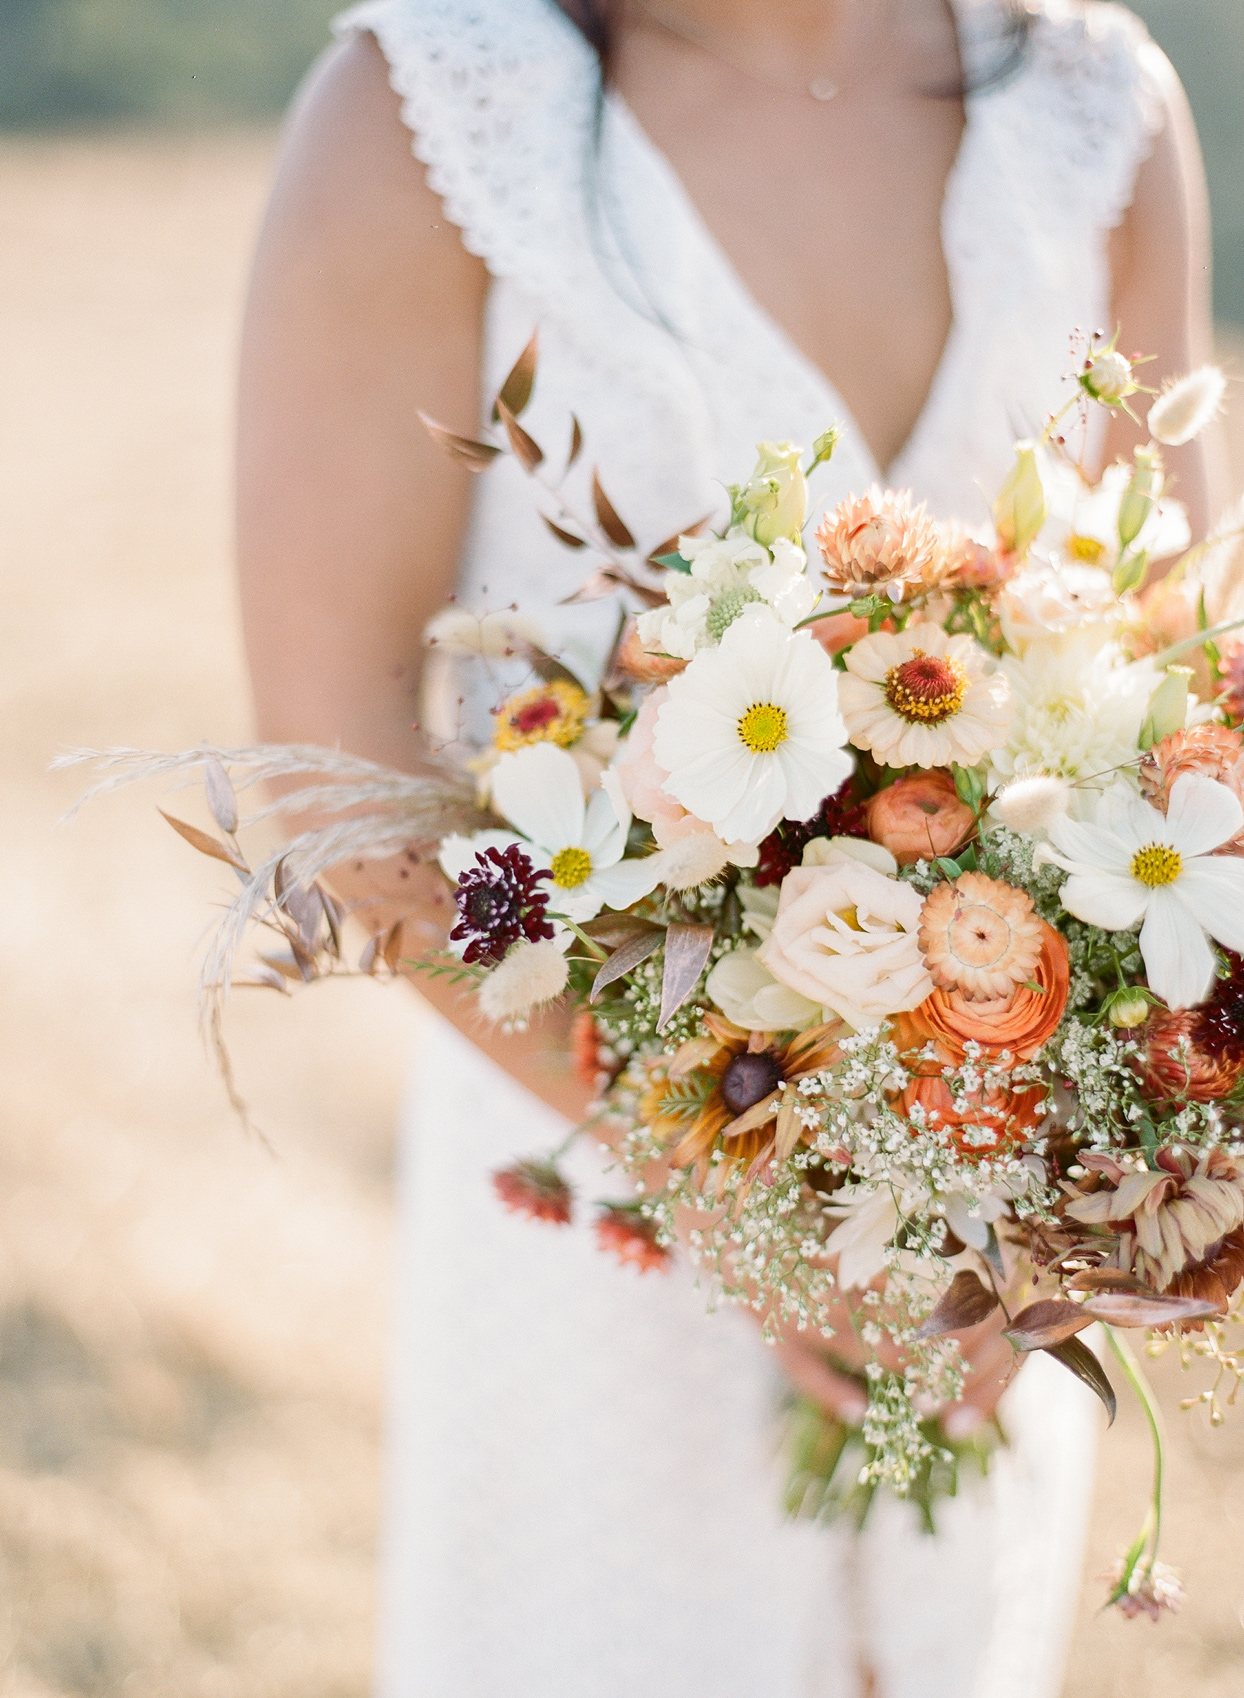 bride's bouquet with white, yellow, and pink flowers